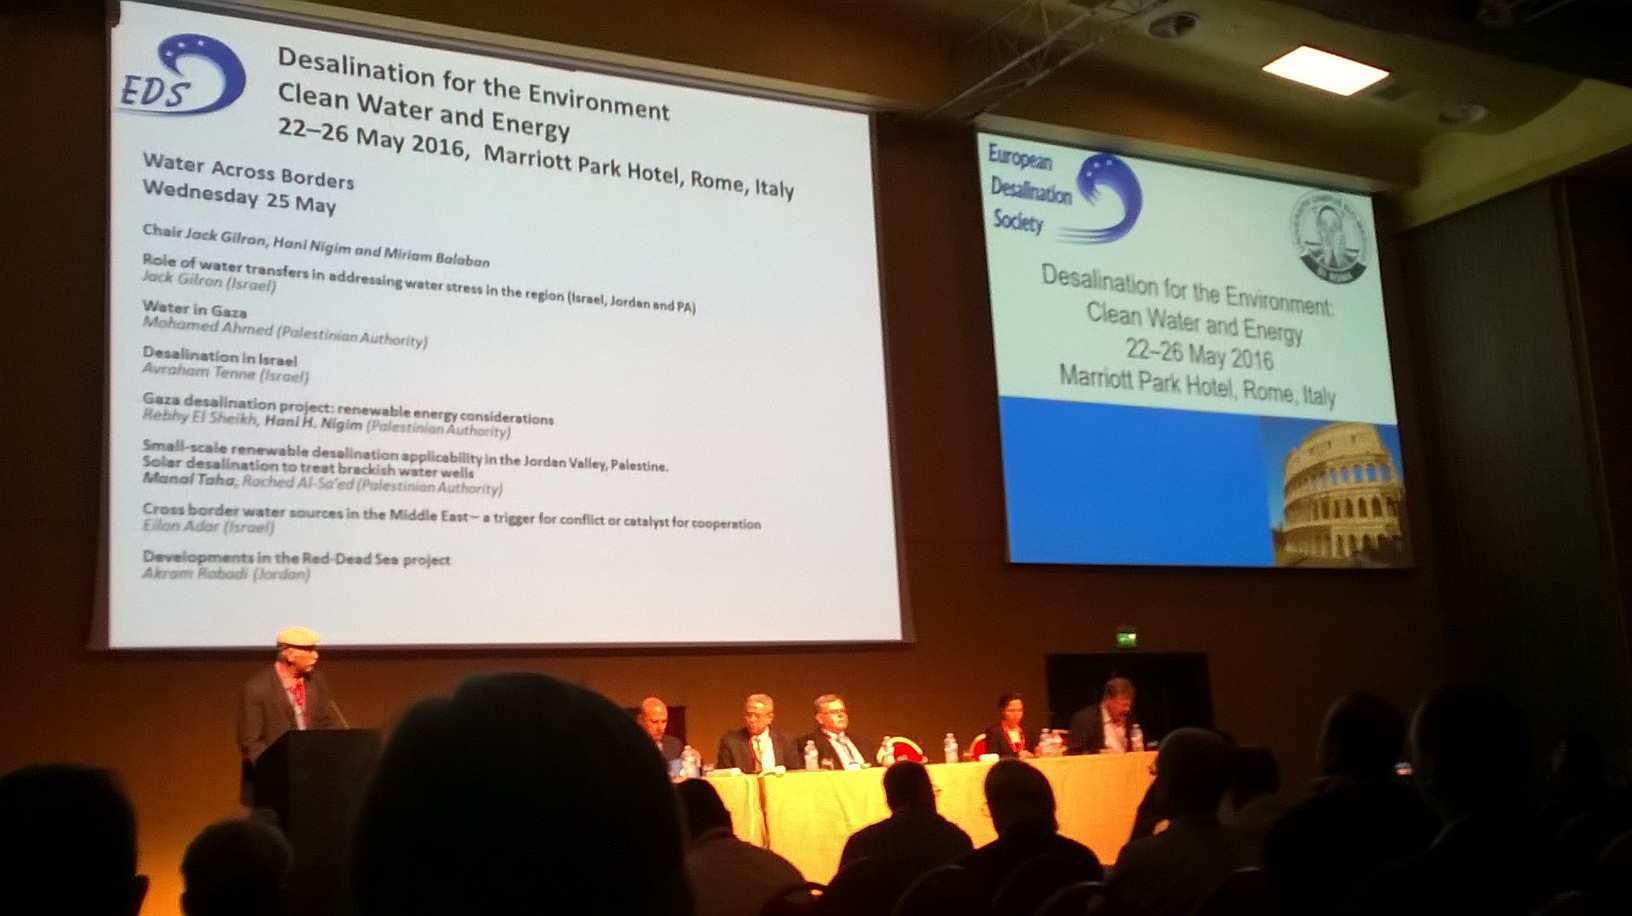 Life Wire Project Presented In Eds Rome 2016 Conference